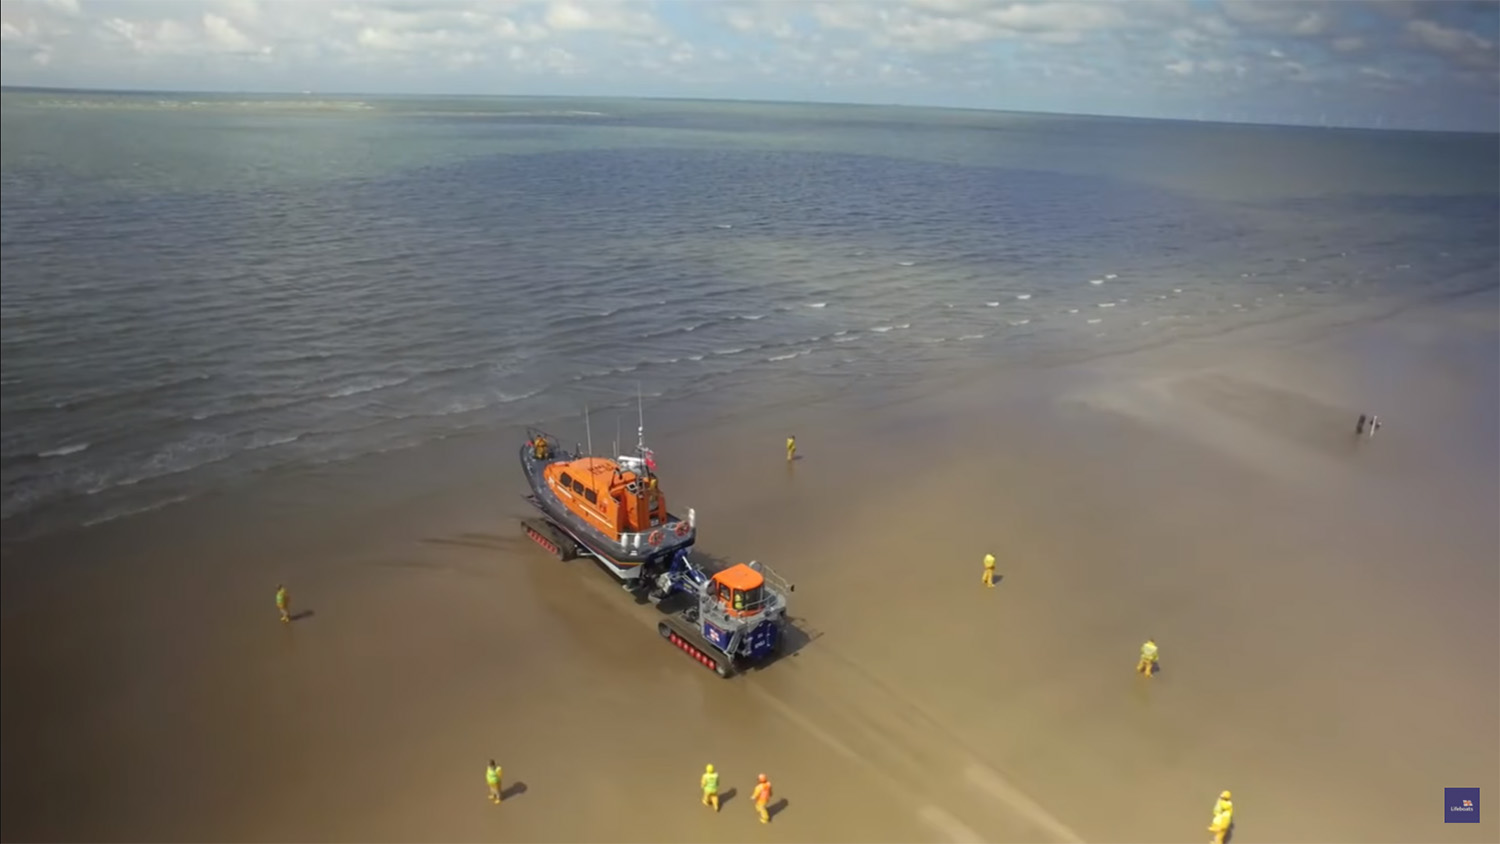 Video thumbnail of a Shannon class lifeboat launching from a beach